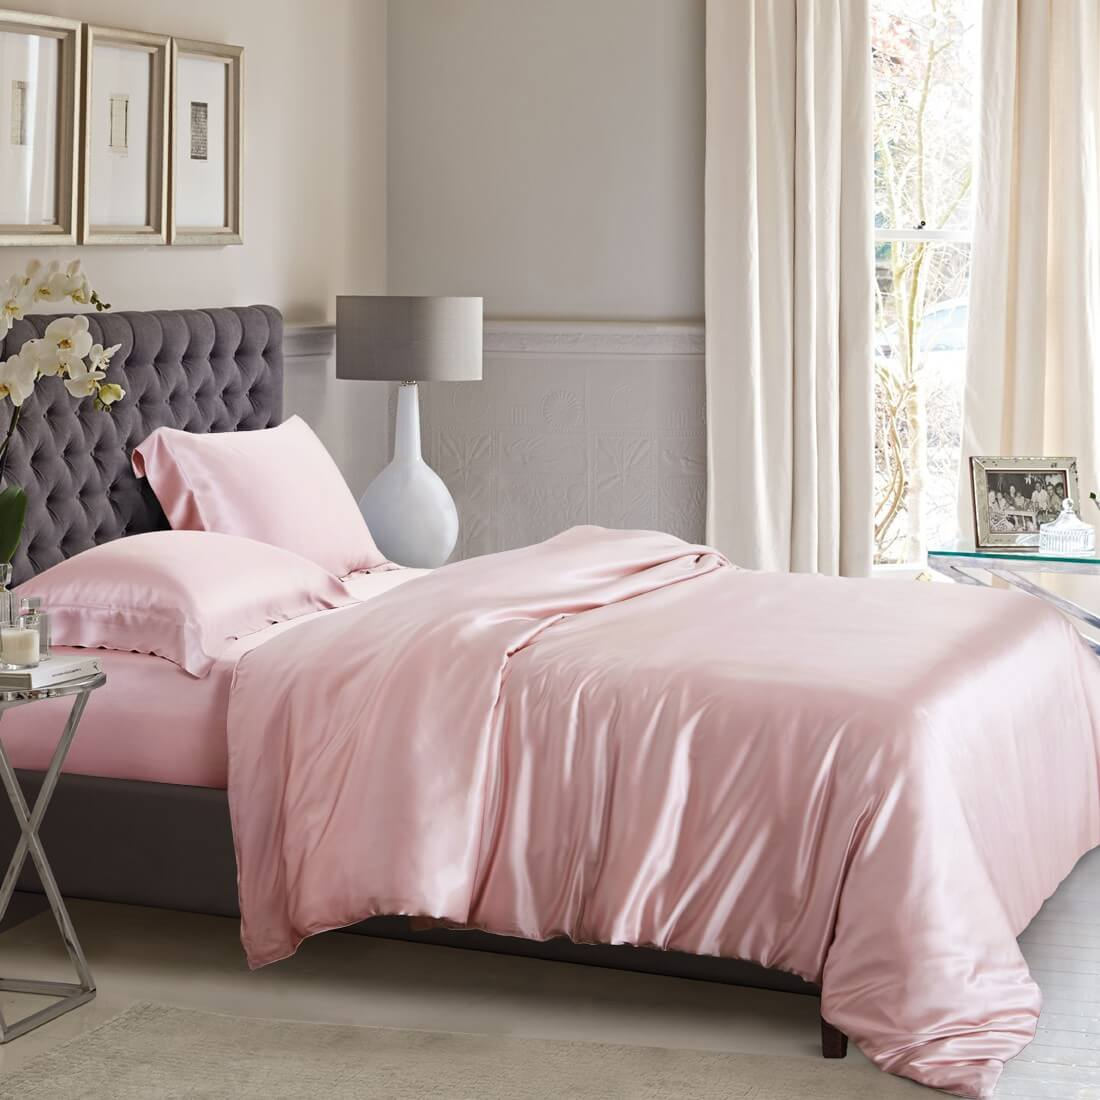 Most Creative Ideas For Decorating Stylish Bedroom